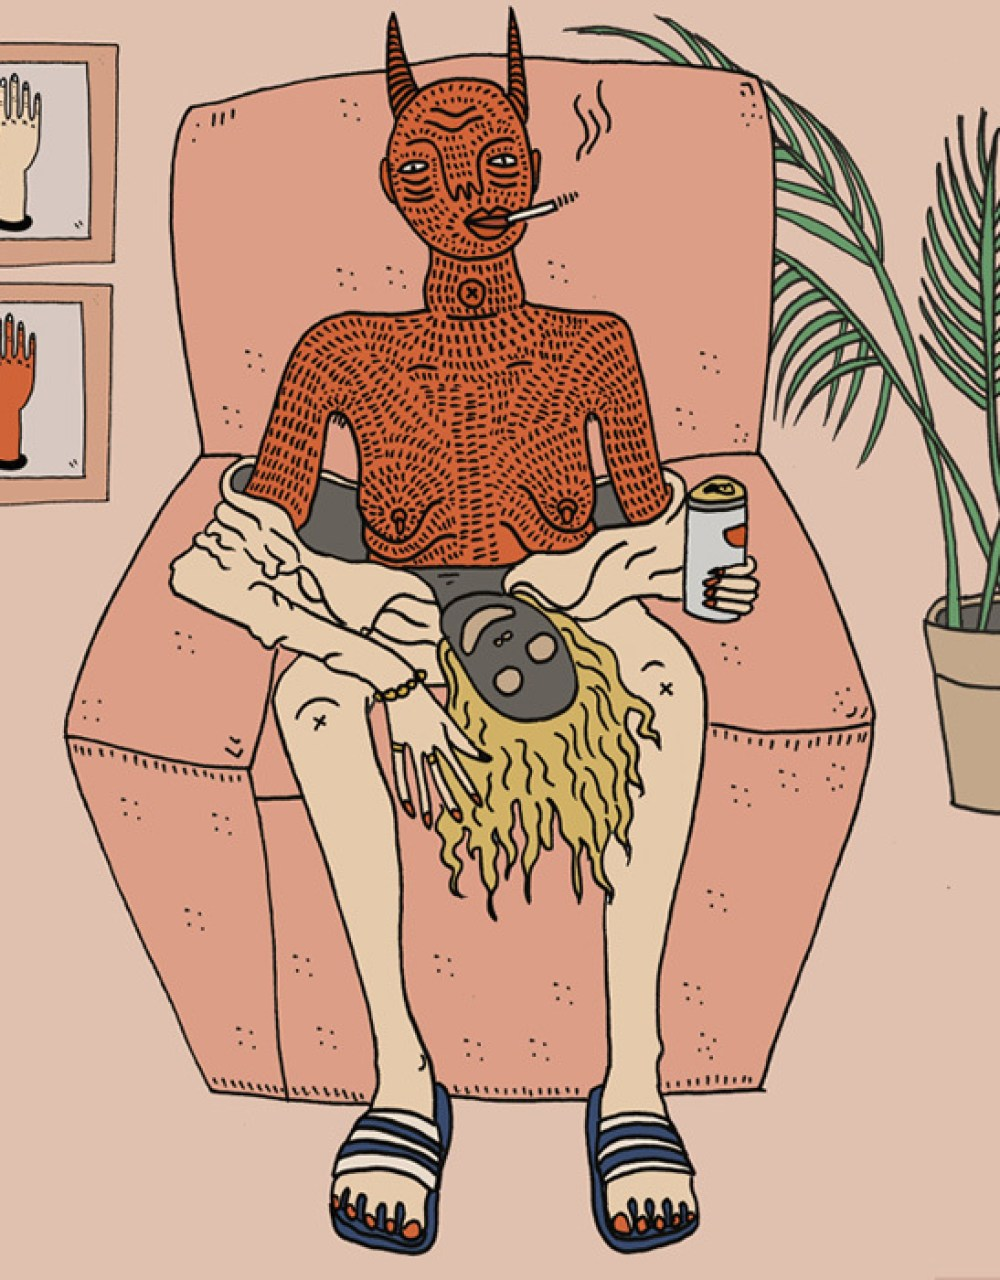 Cba 2 Pretend No More – Illustration by Polly Nor